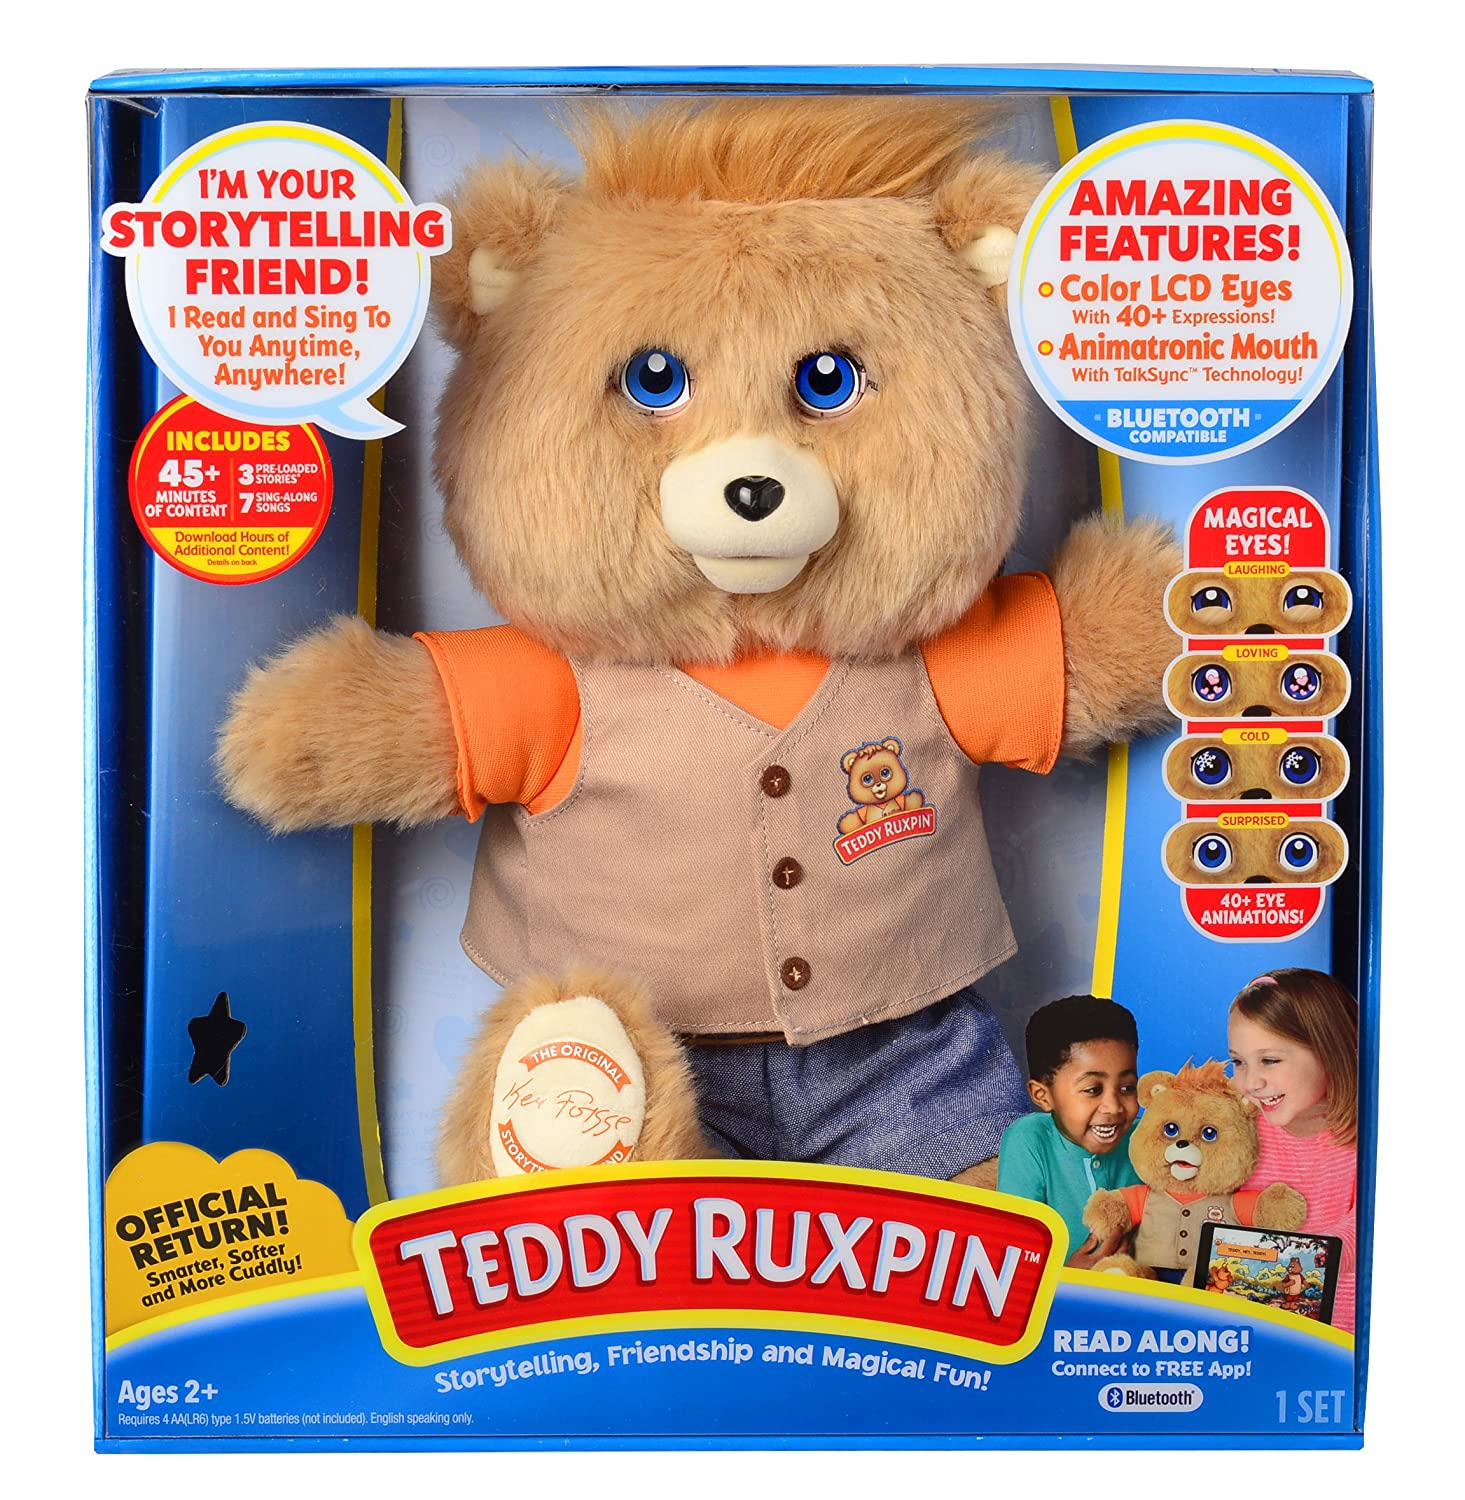 Teddy Ruxpin for 2017